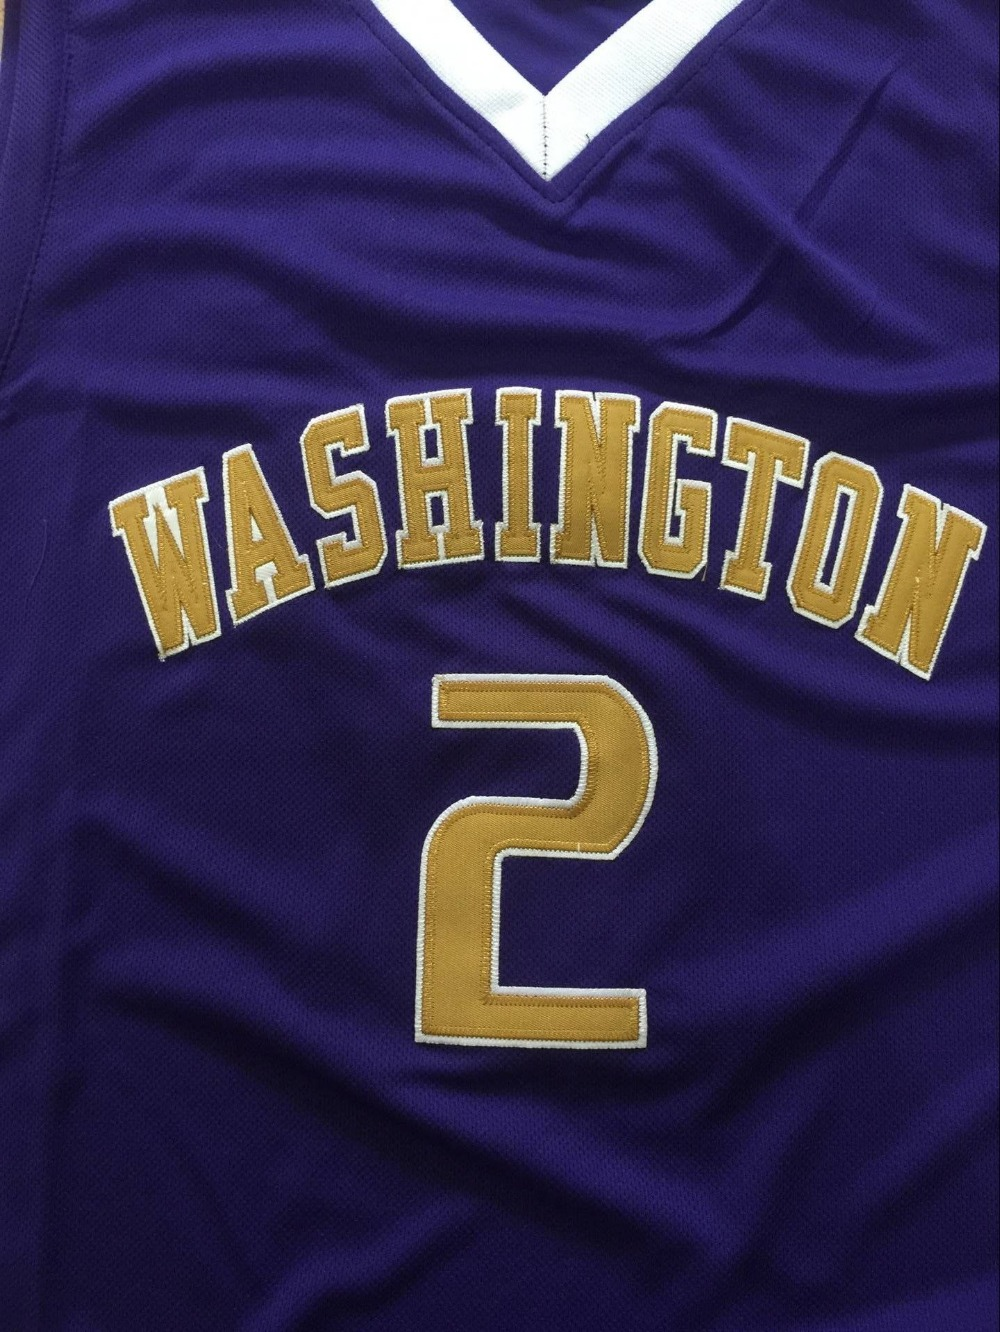 competitive price 4cefd b50d1 reduced isaiah thomas college jersey 4670f d6a5f